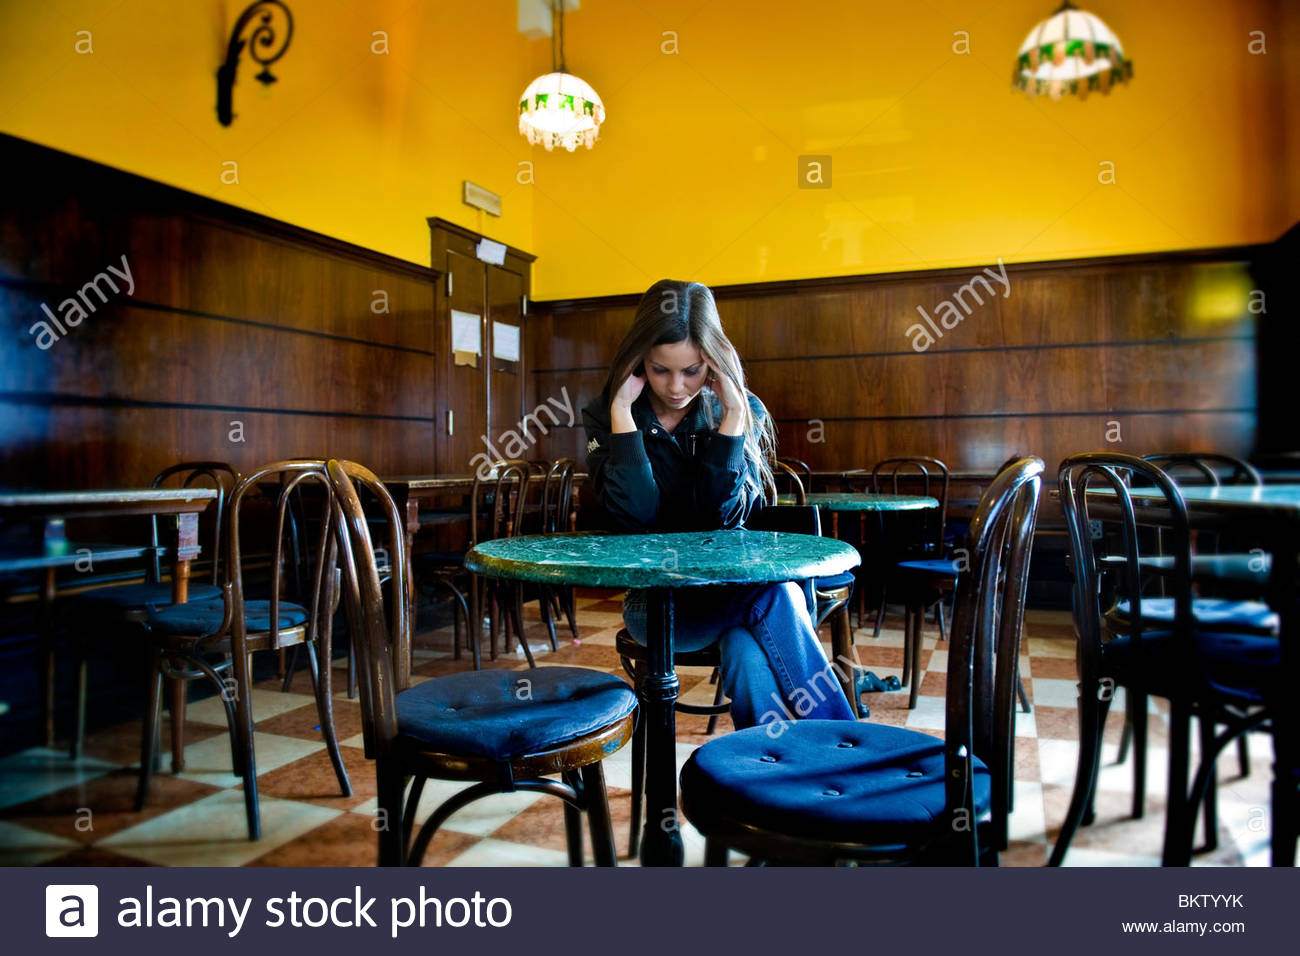 woman alone at a table in a bar - Stock Image